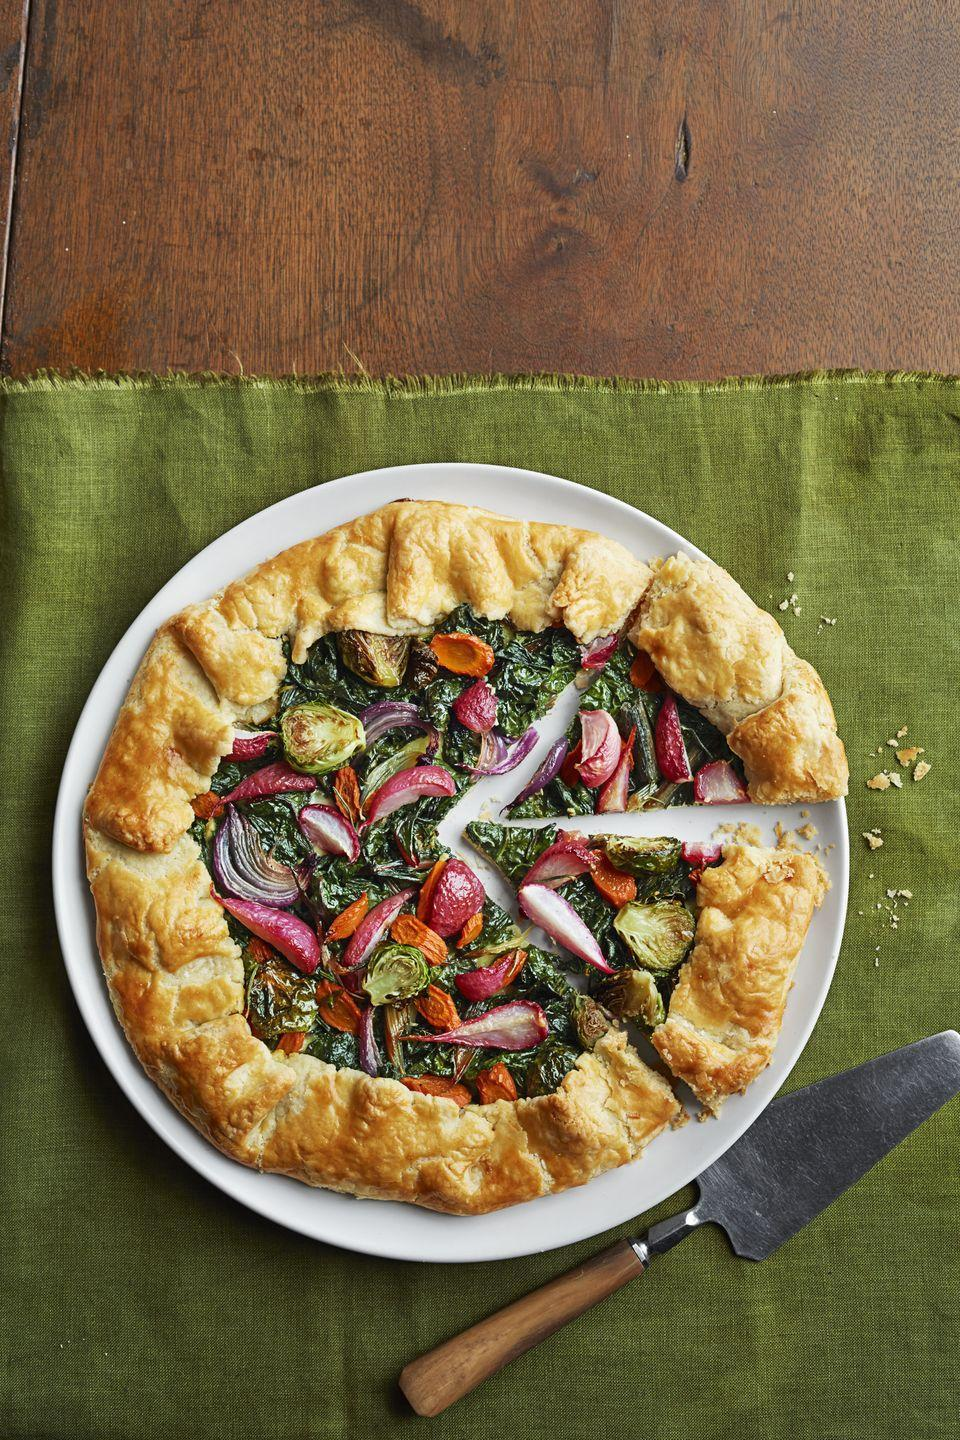 """<p>Pie before the main course is a most excellent idea. </p><p><em><a href=""""https://www.goodhousekeeping.com/food-recipes/a16046/winter-veggie-tarts-recipe-ghk1214/"""" rel=""""nofollow noopener"""" target=""""_blank"""" data-ylk=""""slk:Get the recipe for Winter Veggie Tart »"""" class=""""link rapid-noclick-resp"""">Get the recipe for Winter Veggie Tart »</a></em></p><p><strong>RELATED: </strong><a href=""""https://www.goodhousekeeping.com/food-recipes/dessert/g822/pie-recipes/"""" rel=""""nofollow noopener"""" target=""""_blank"""" data-ylk=""""slk:Delicious Pie Recipes Anyone Can Make"""" class=""""link rapid-noclick-resp"""">Delicious Pie Recipes Anyone Can Make</a></p>"""